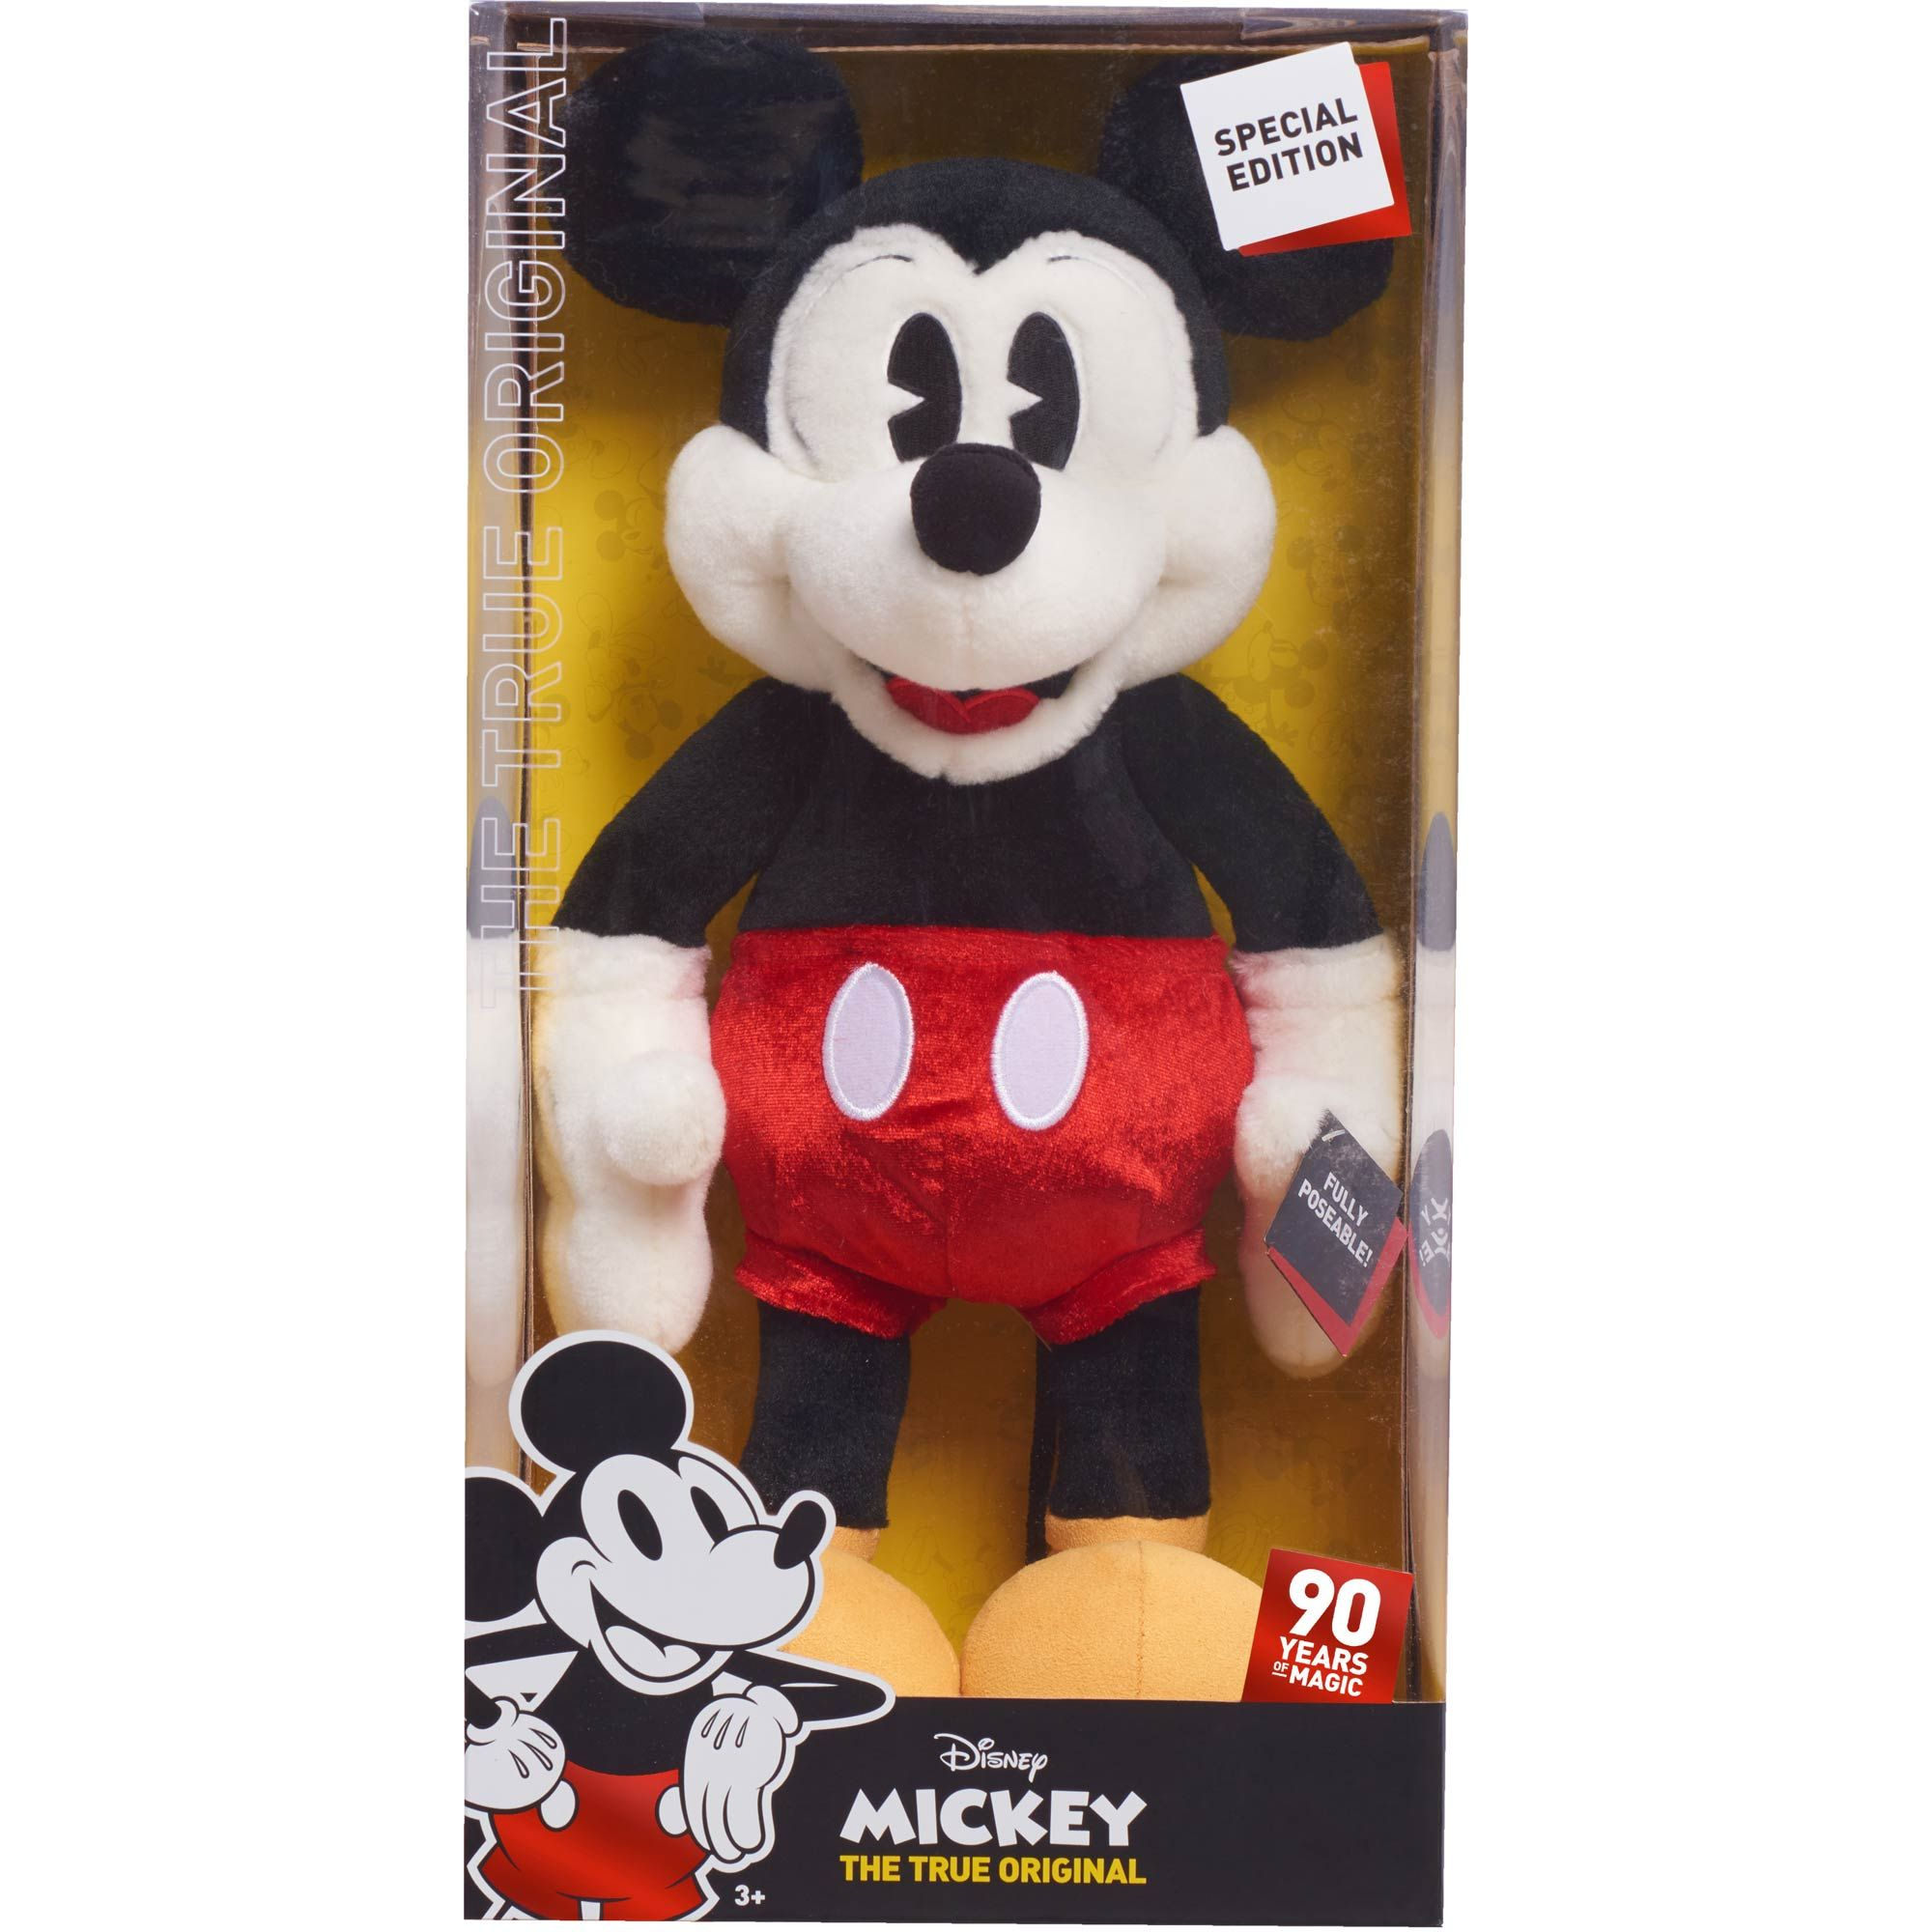 a26f4edbd26 Celebrate 90 years of Disney magic with the Mickey s 90th Anniversary Ultra  Deluxe Mickey Mouse Plush from Just Play. Pie-Eyed Mickey comes packaged in  a ...